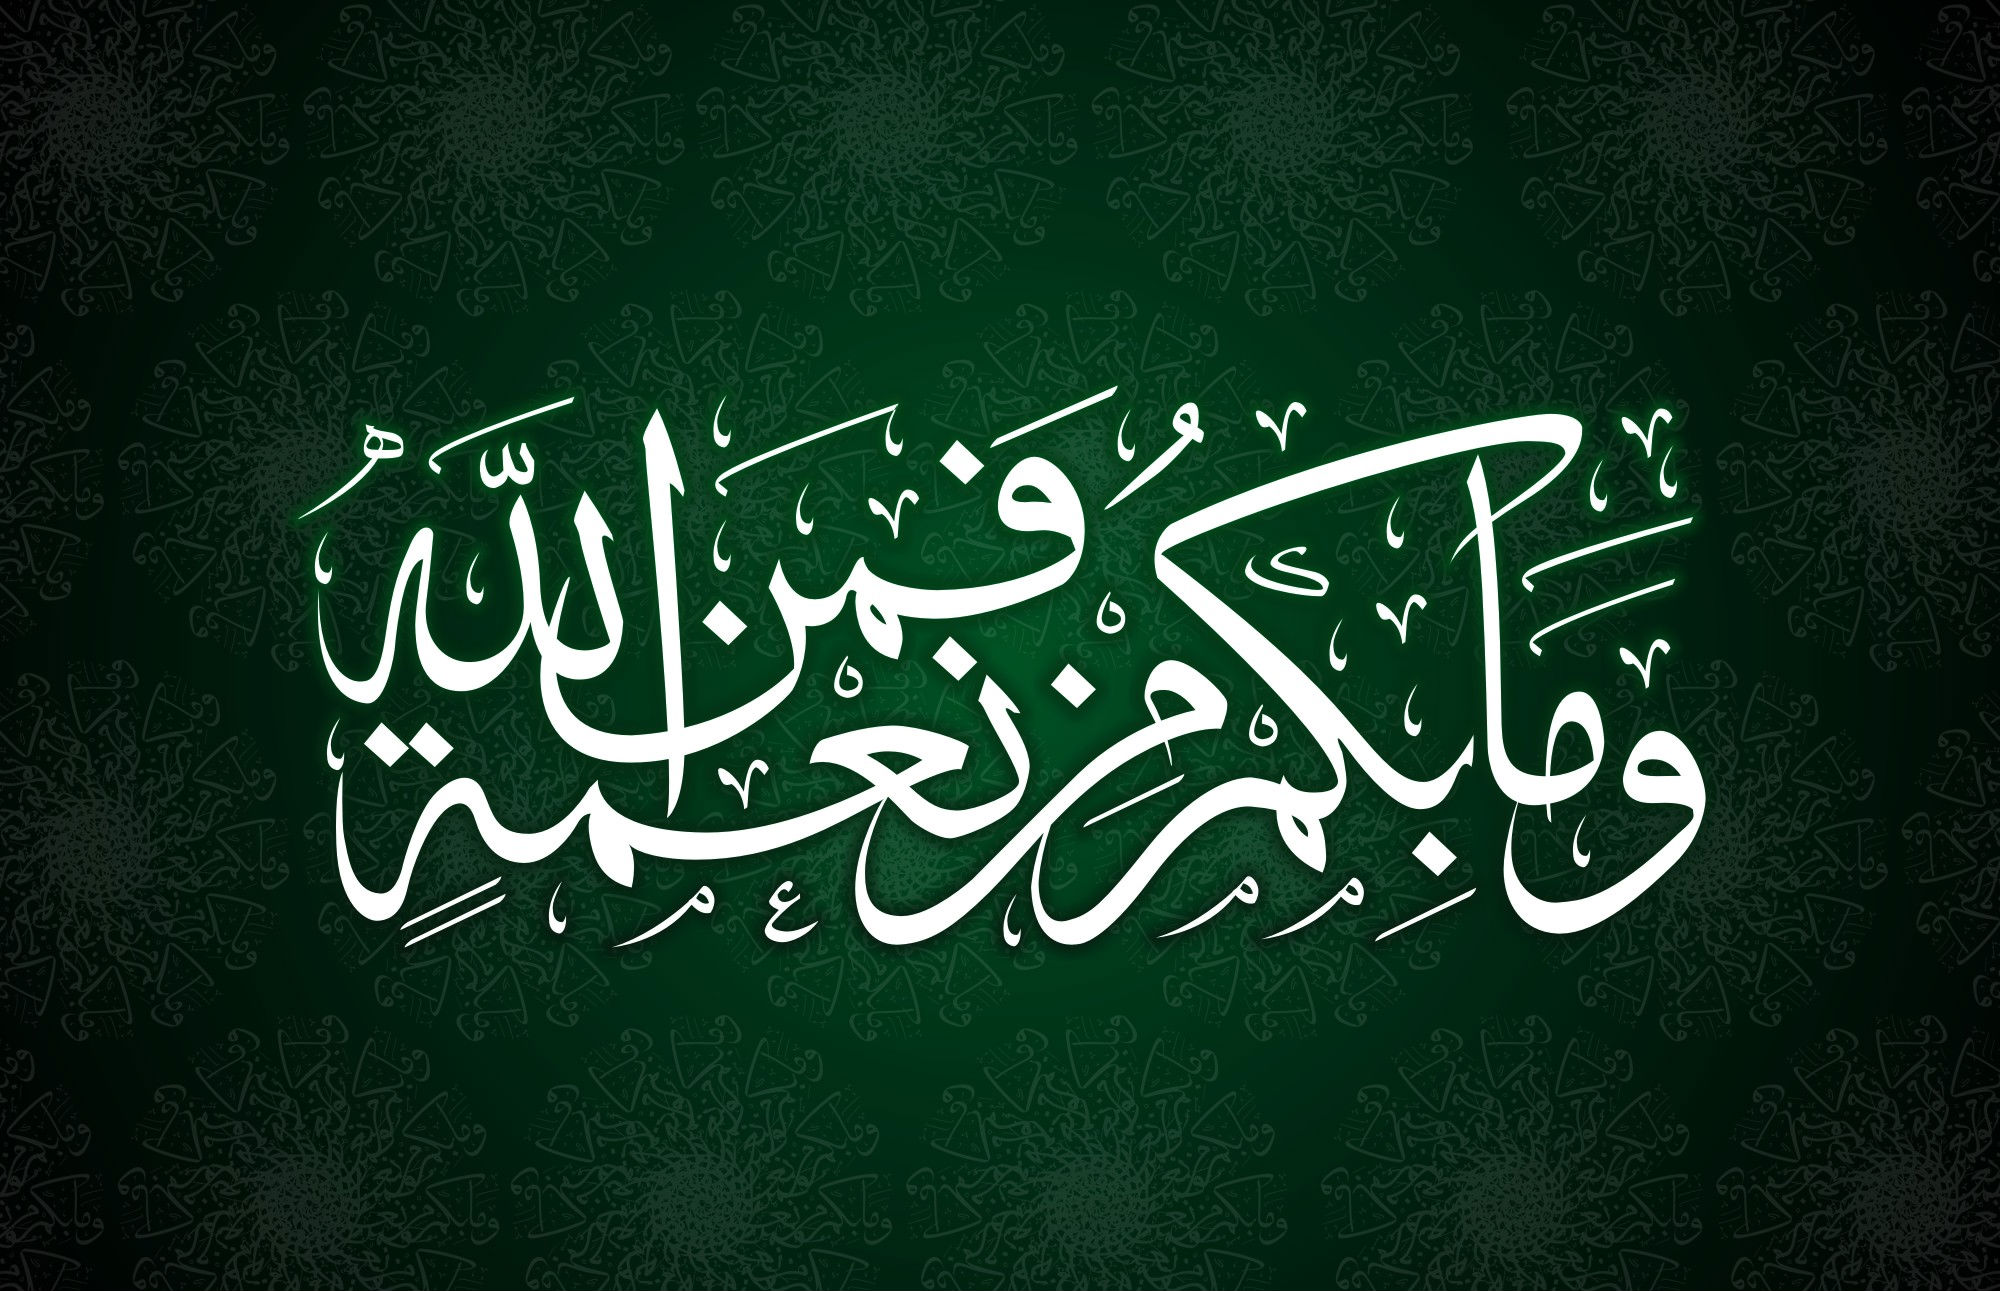 gods blessing in arabic full hd wallpaper and background